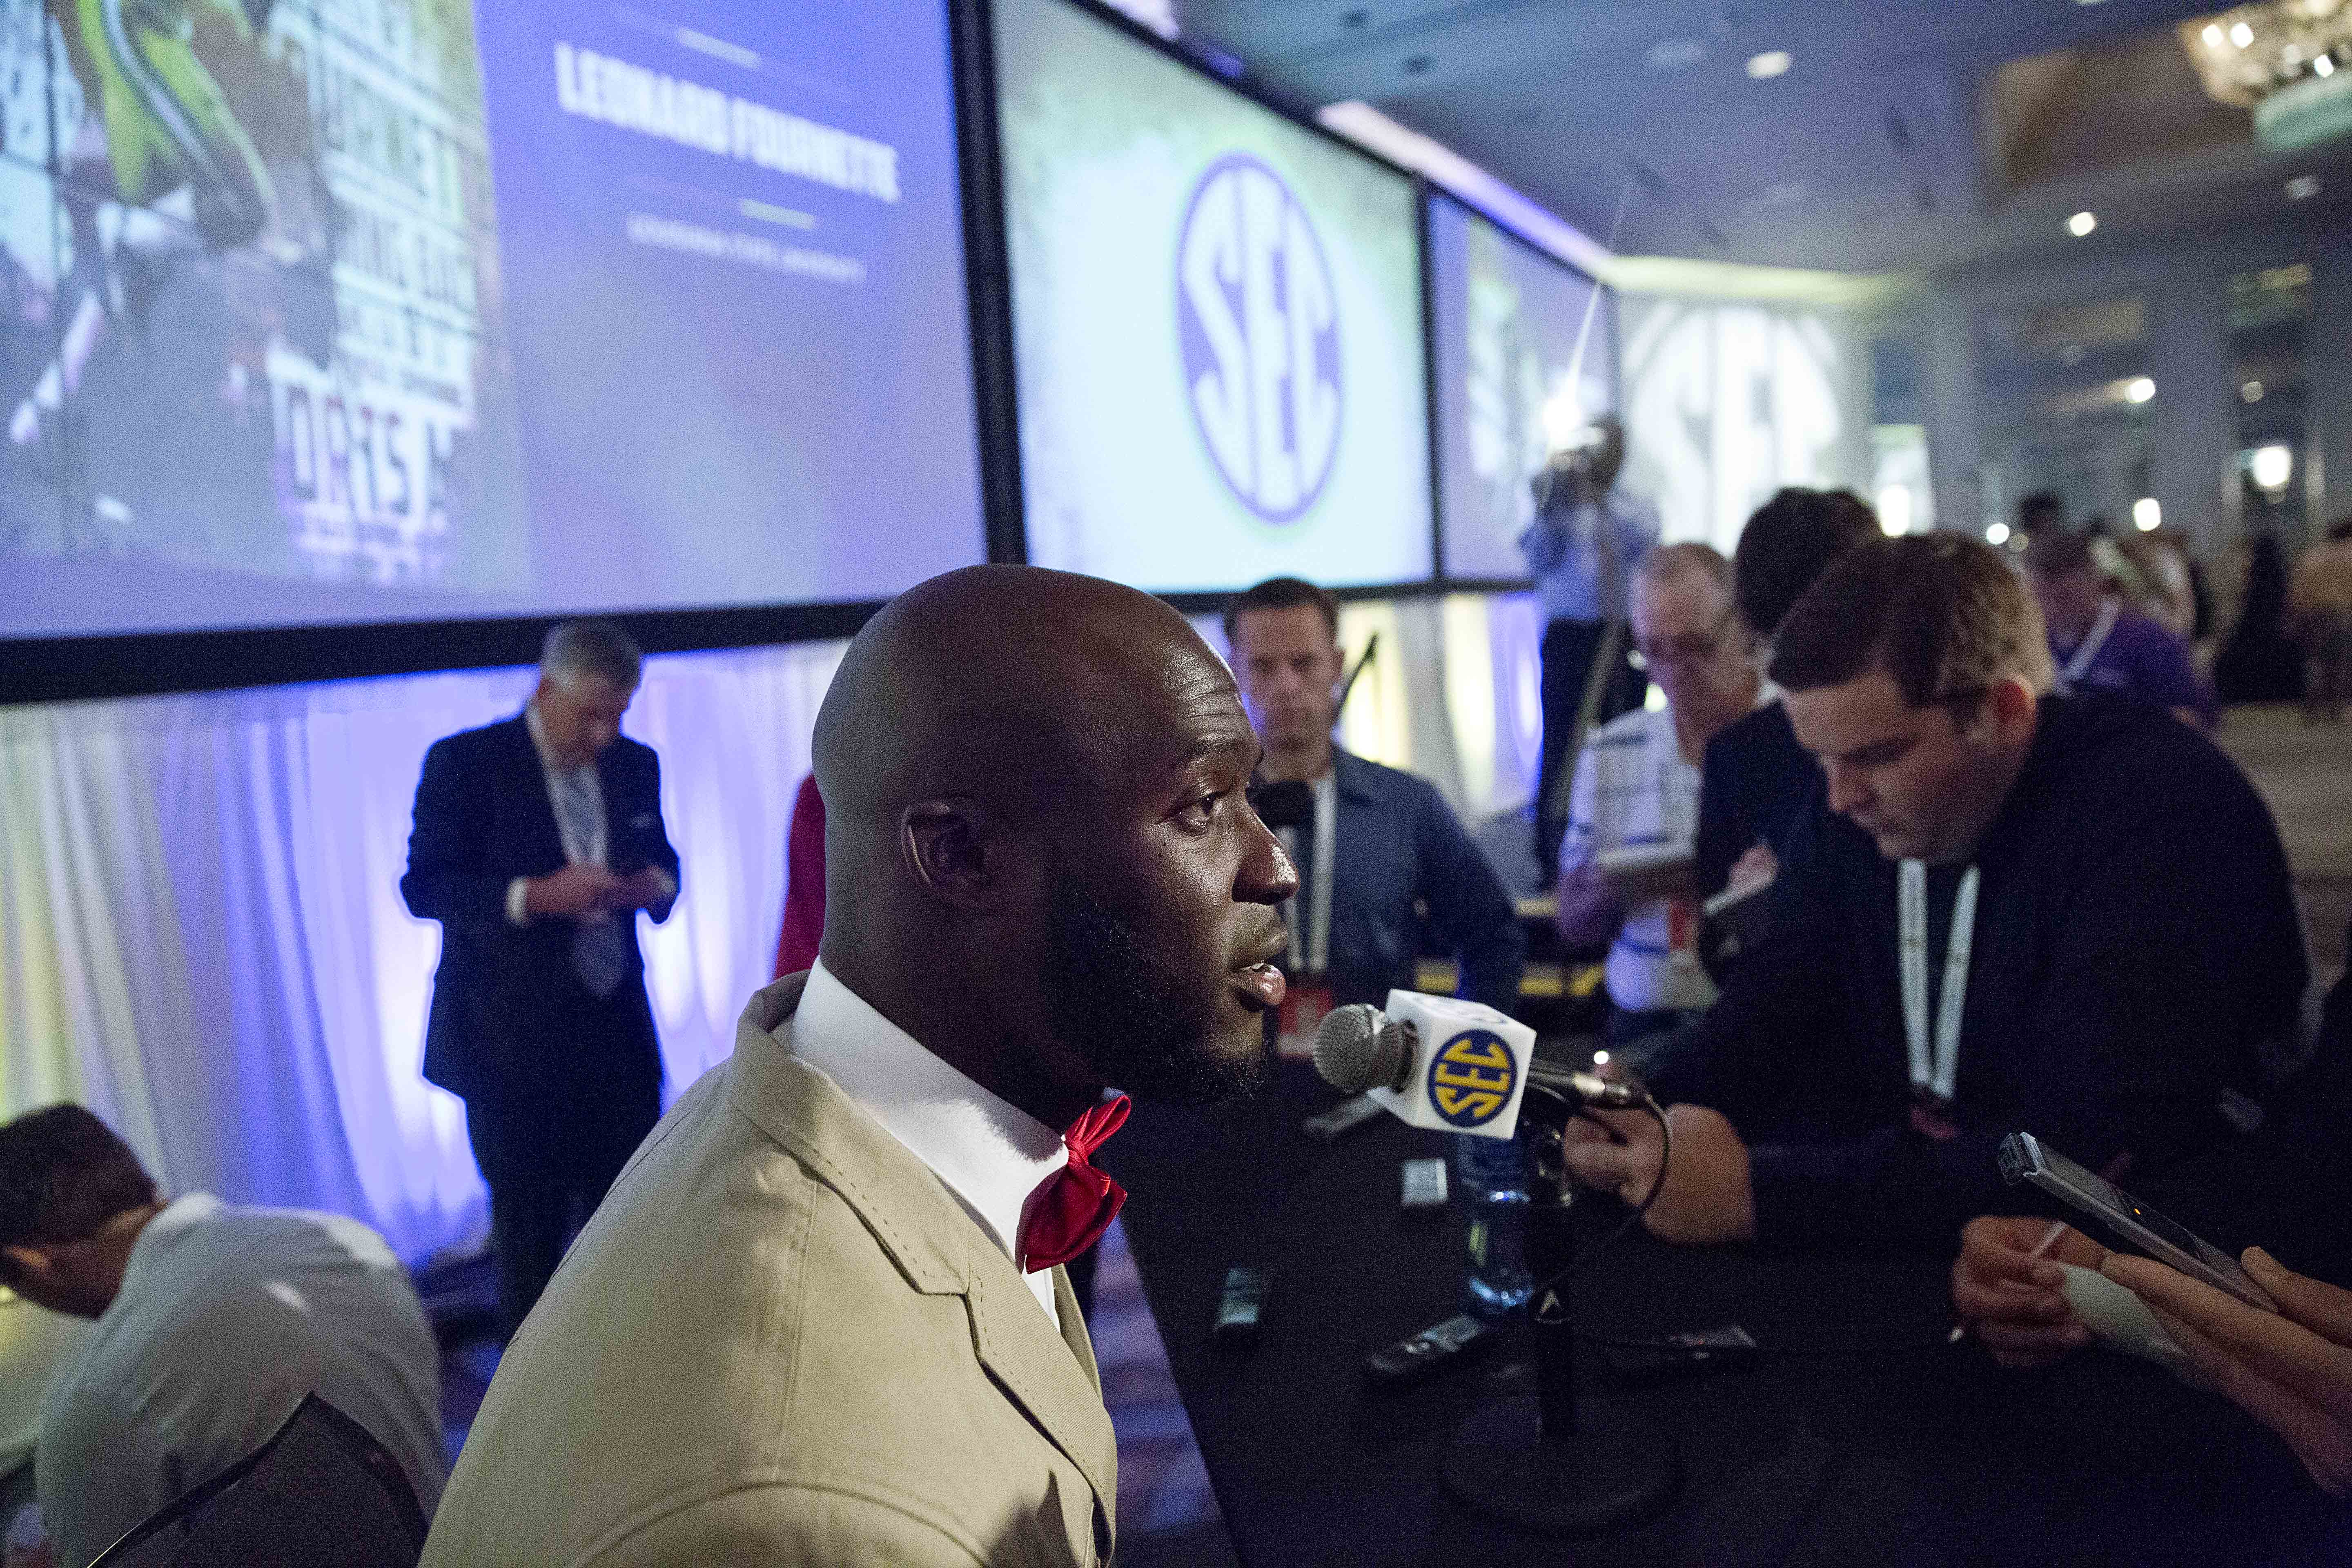 LSU running back Leonard Fournette speaks to the media at the Southeastern Conference NCAA college football media days, Thursday, July 16, 2015, in Hoover, Ala. (AP Photo/Brynn Anderson)